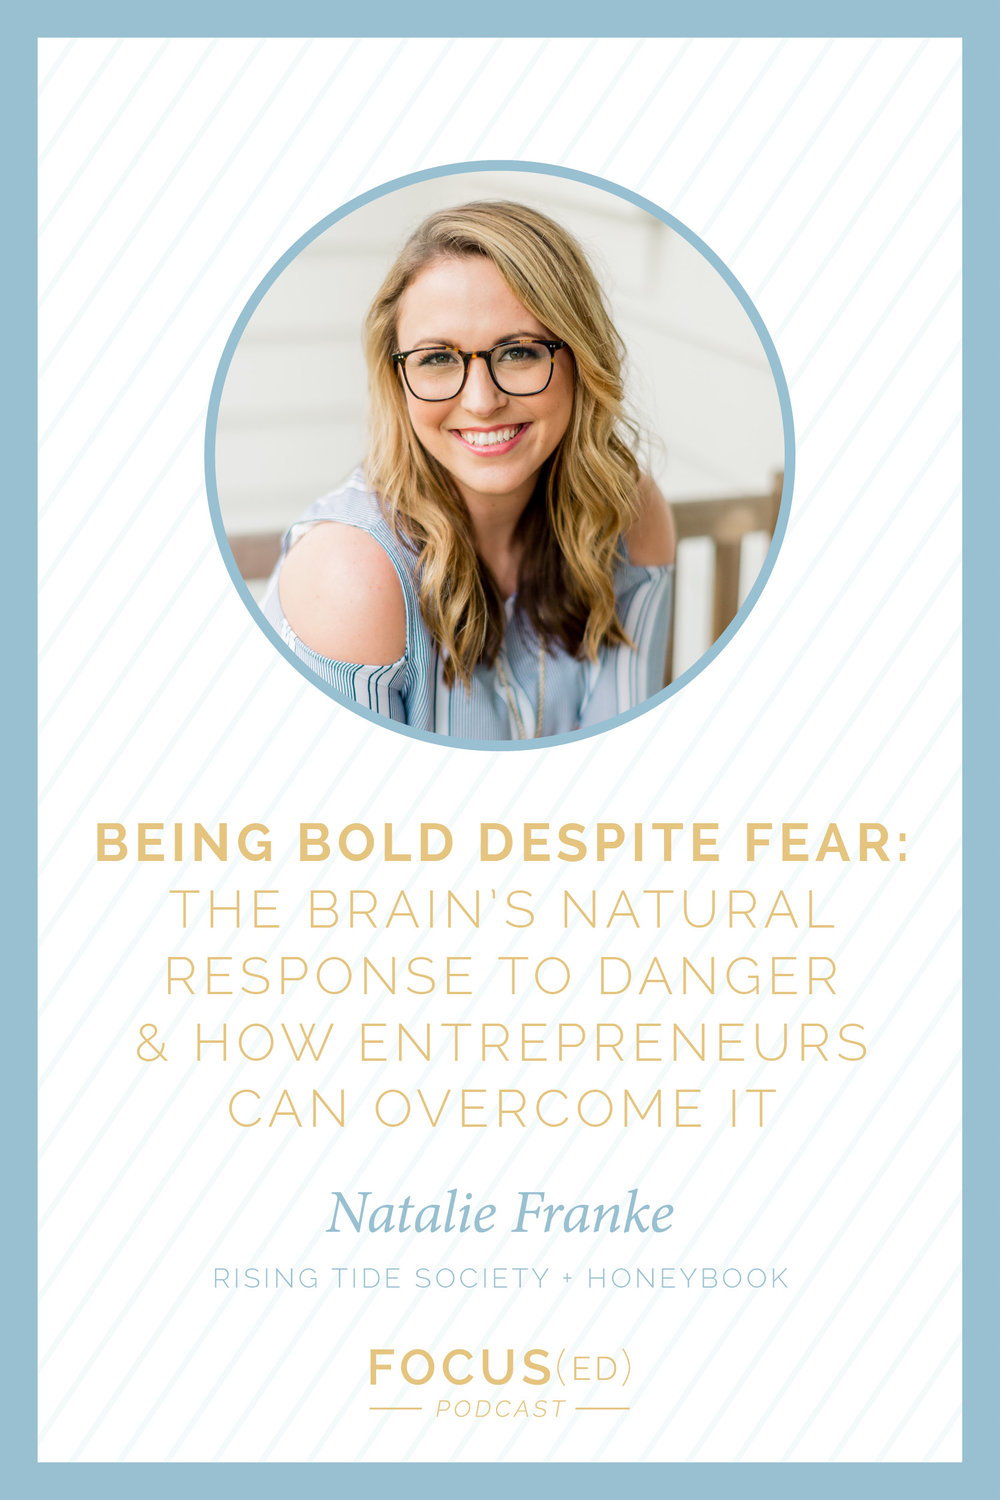 Embracing Fear Actually Propels You Forward, Natalie Franke  |  Focus(ed) Podcast